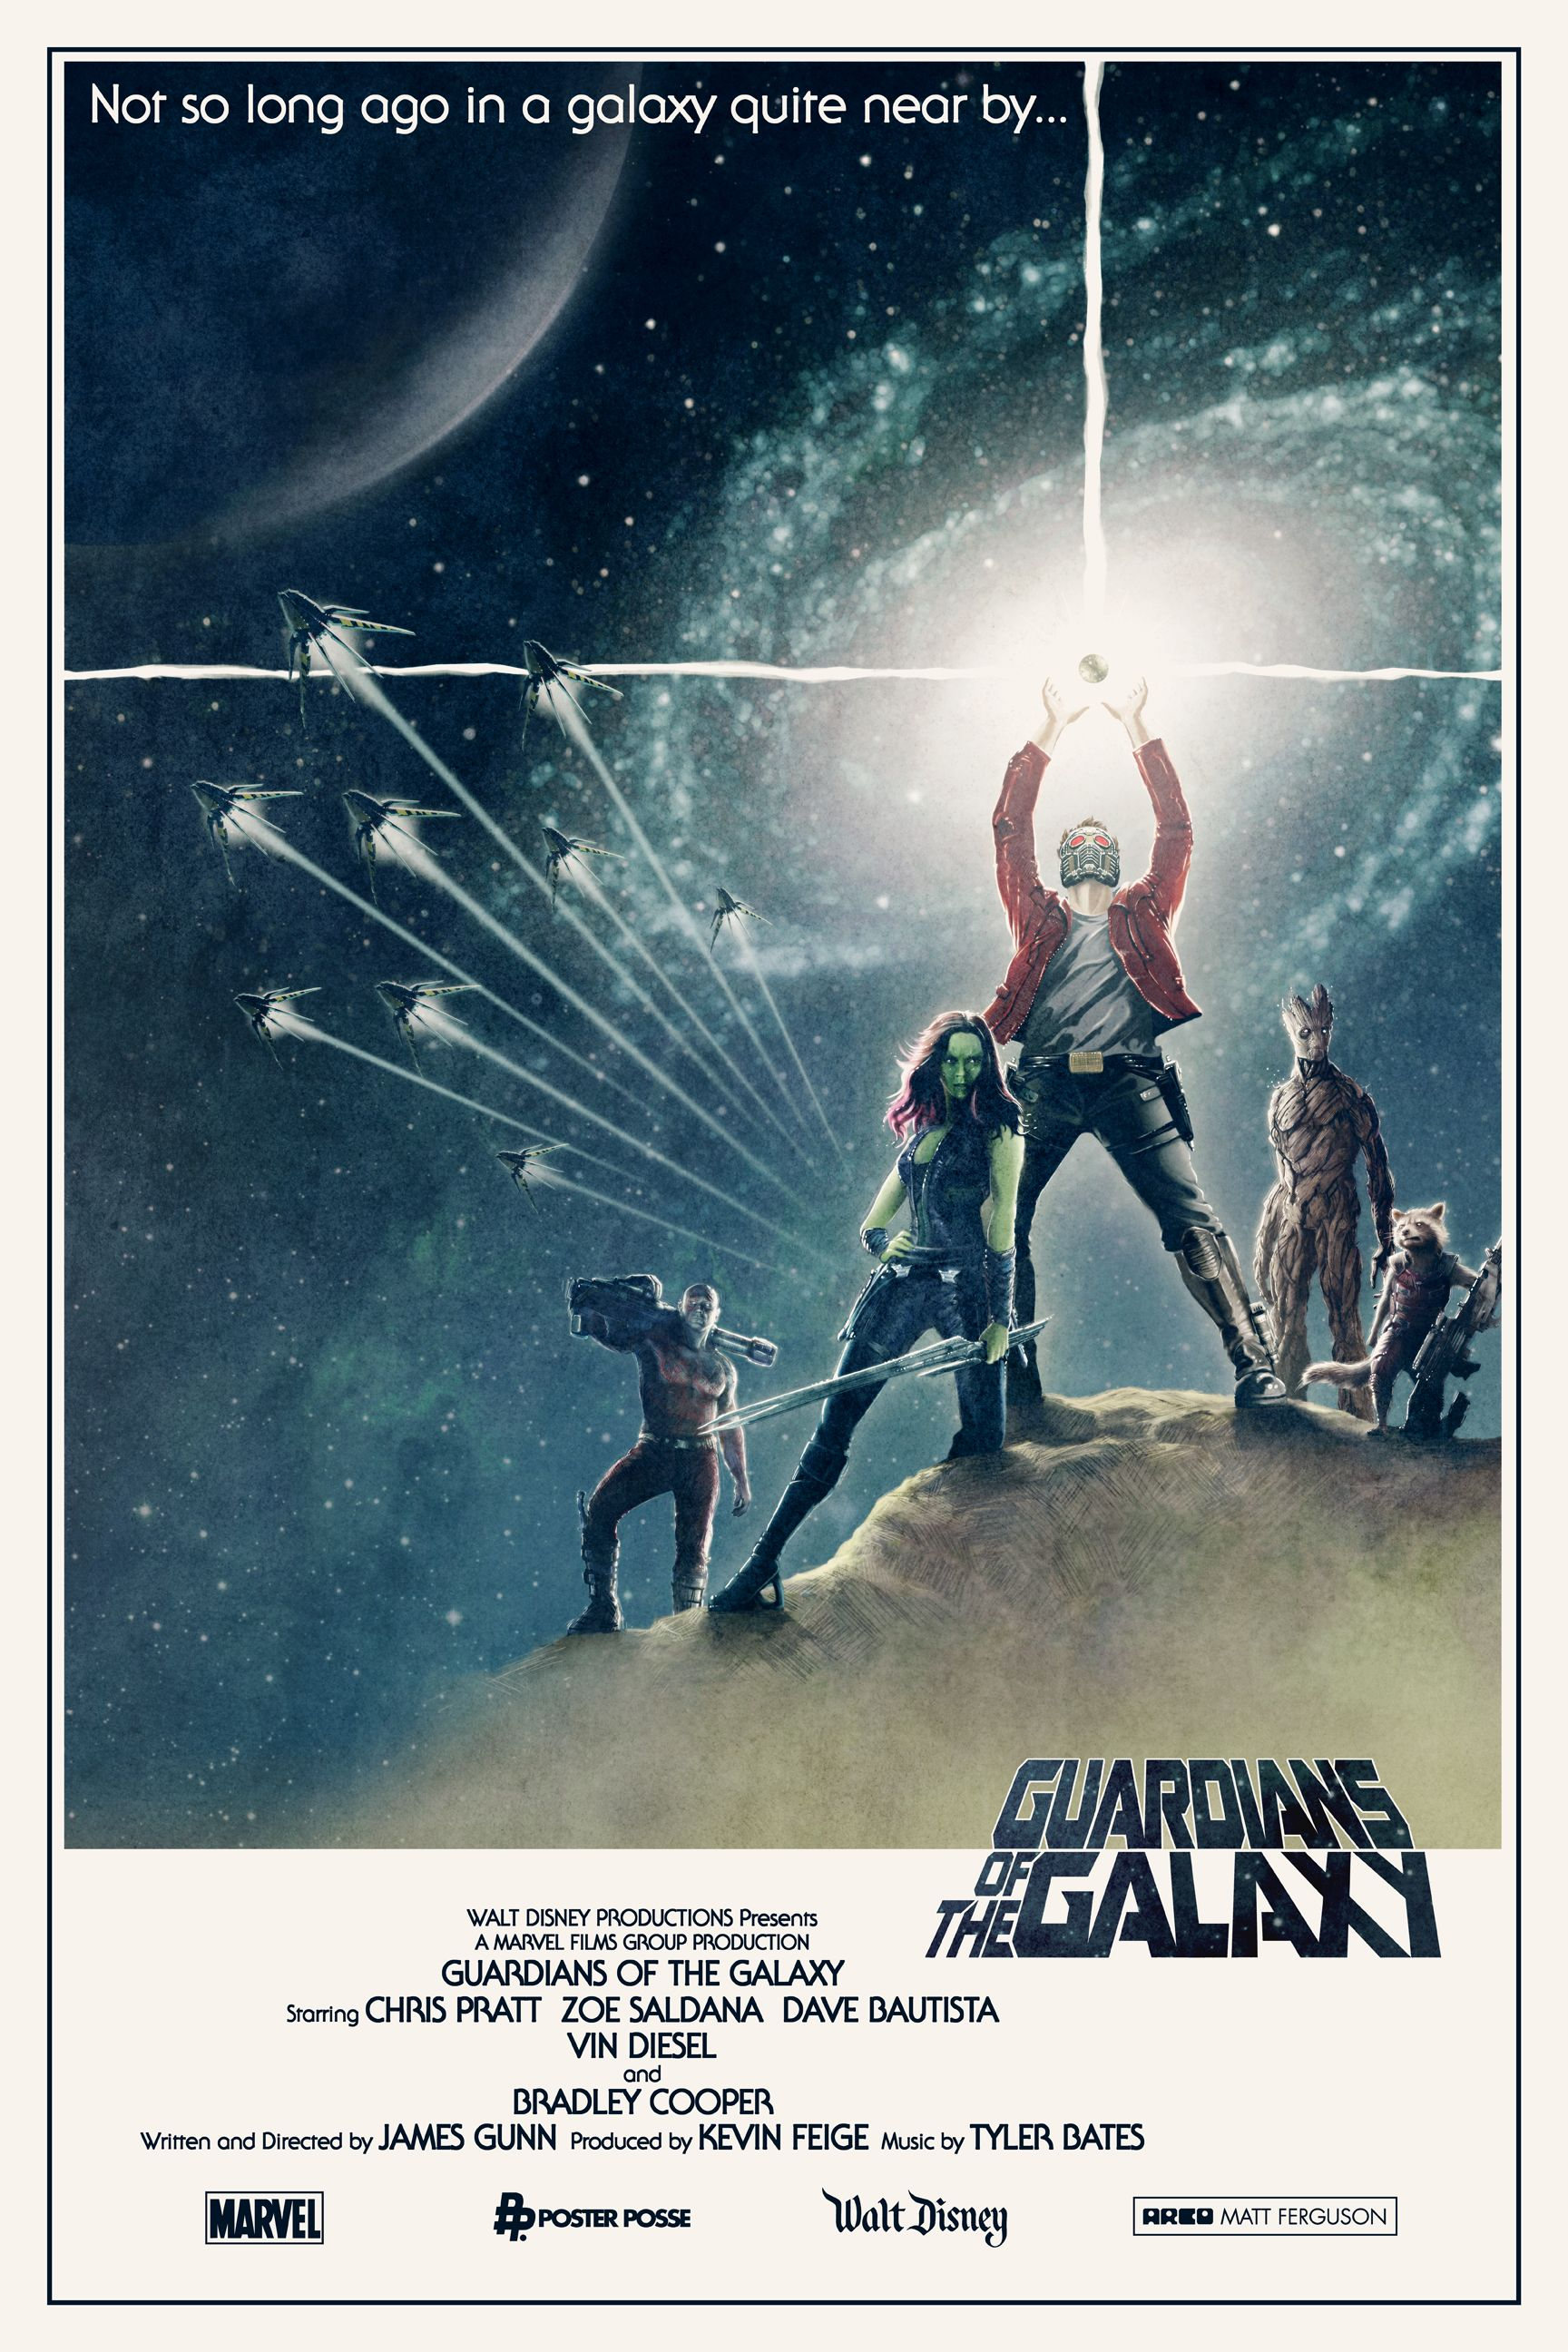 New Tv Spot And Fan Poster For Guardians Of The Galaxy Galaxy Poster Guardians Of The Galaxy Marvel